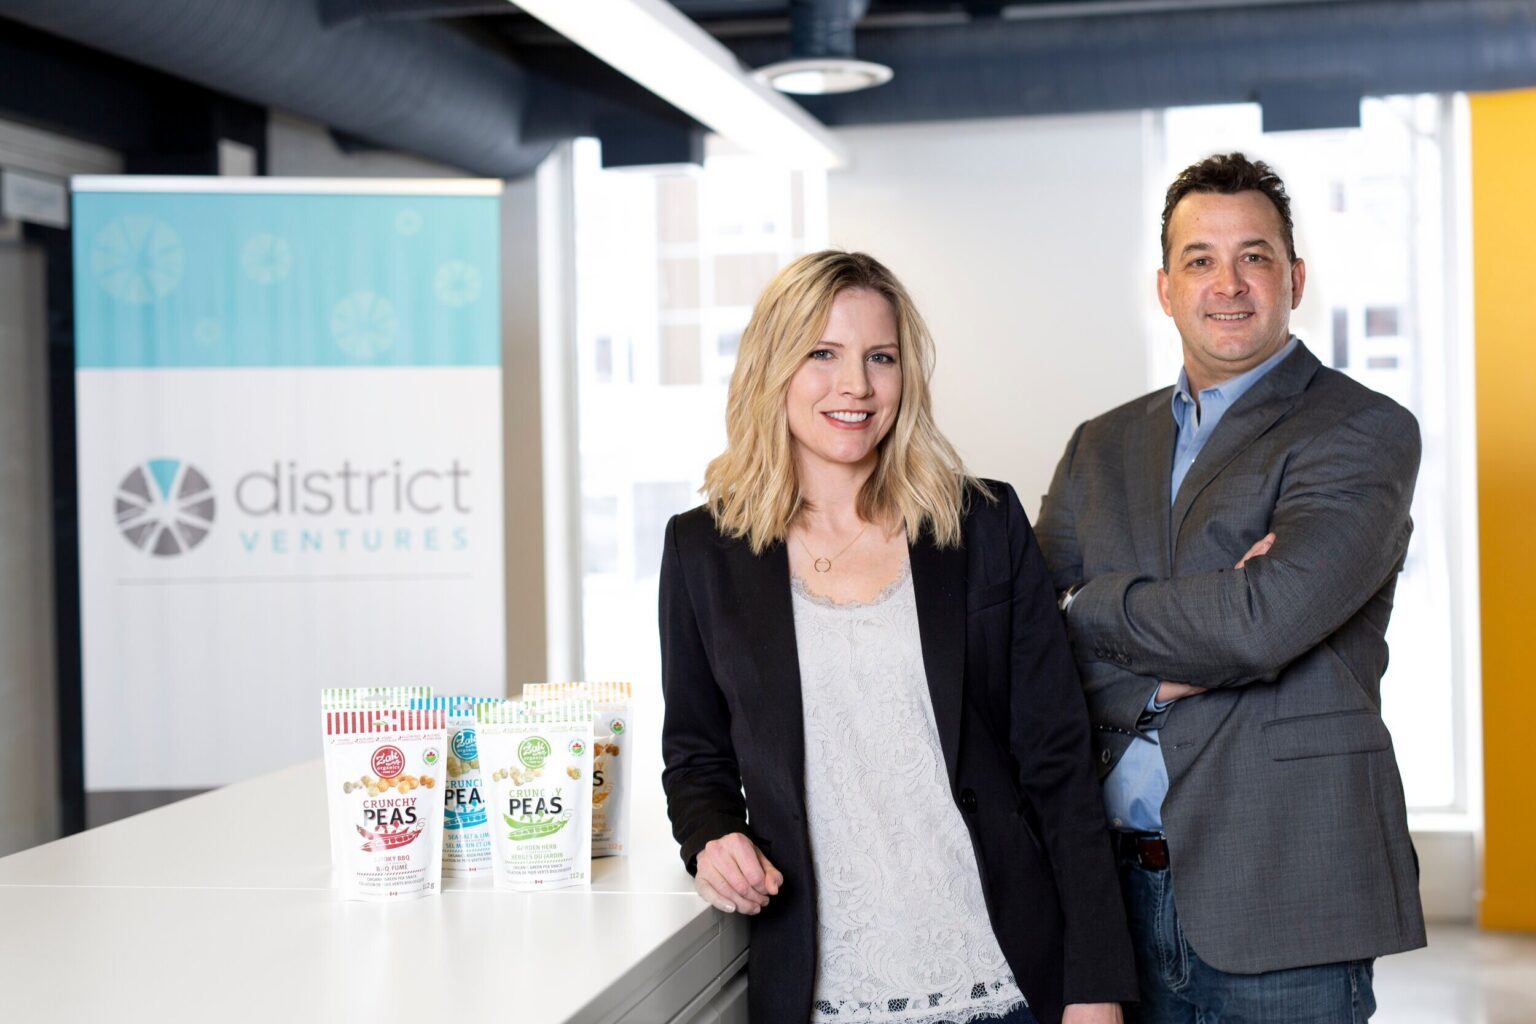 Empire Partners with District Ventures to Help Early-Stage ...